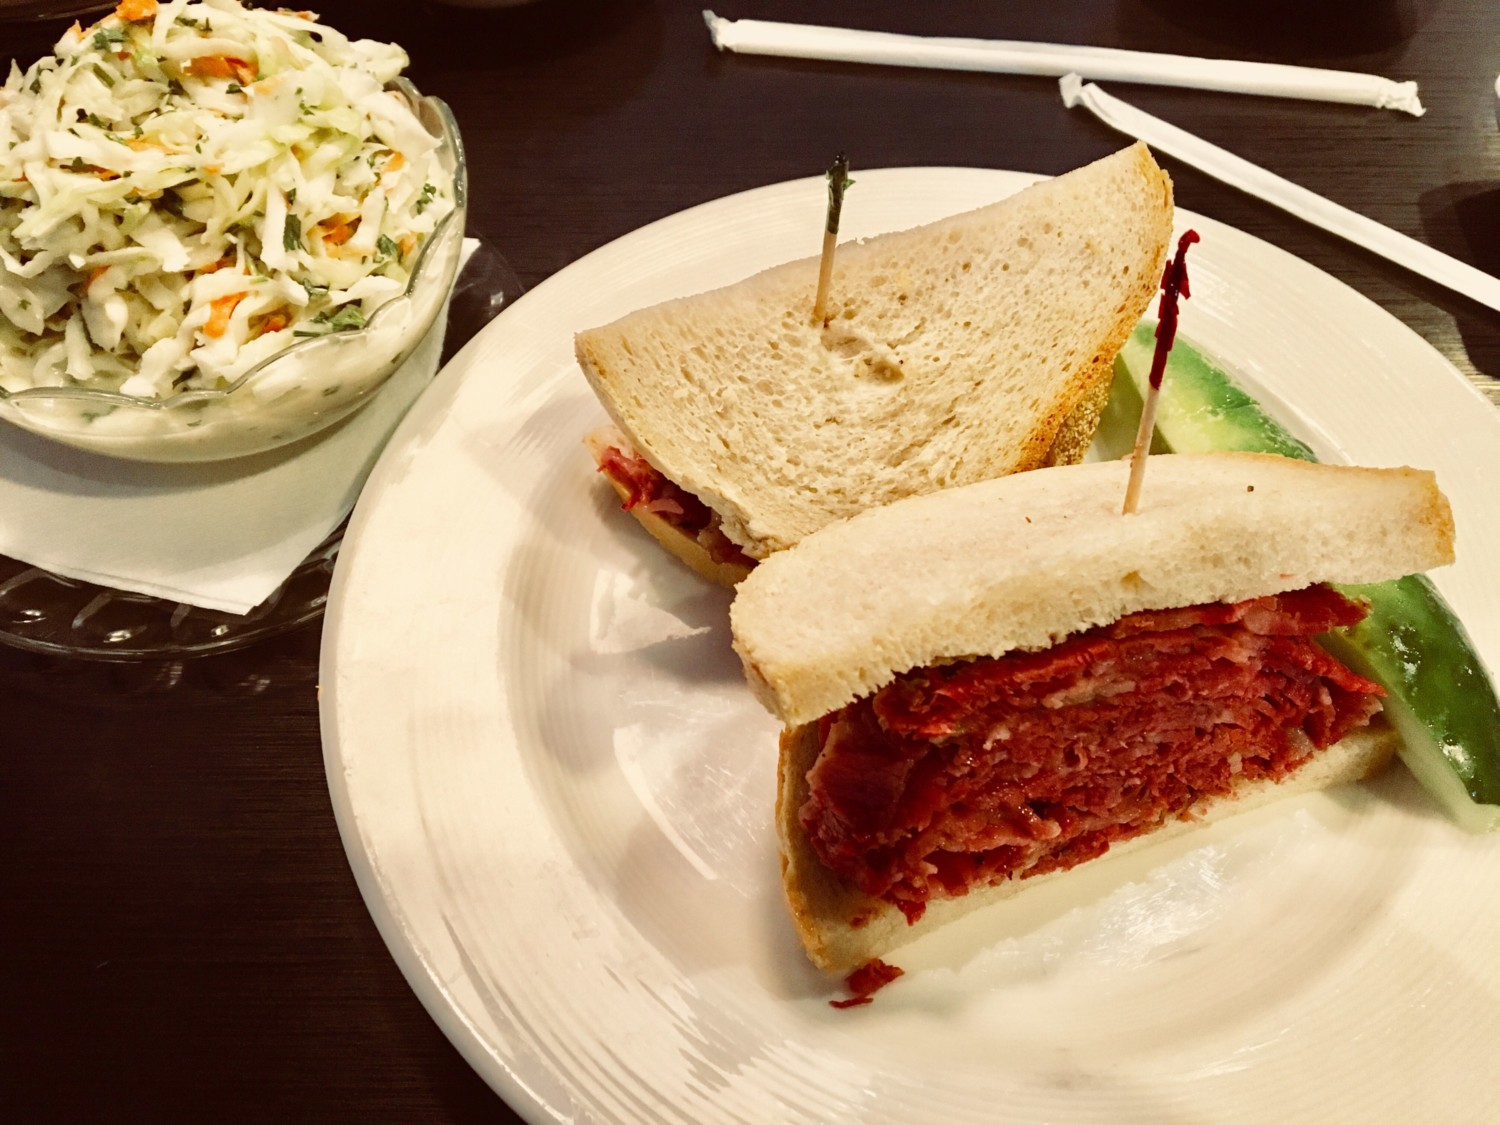 Lick the Plate: Celebrating corned beef on St. Patrick's Day